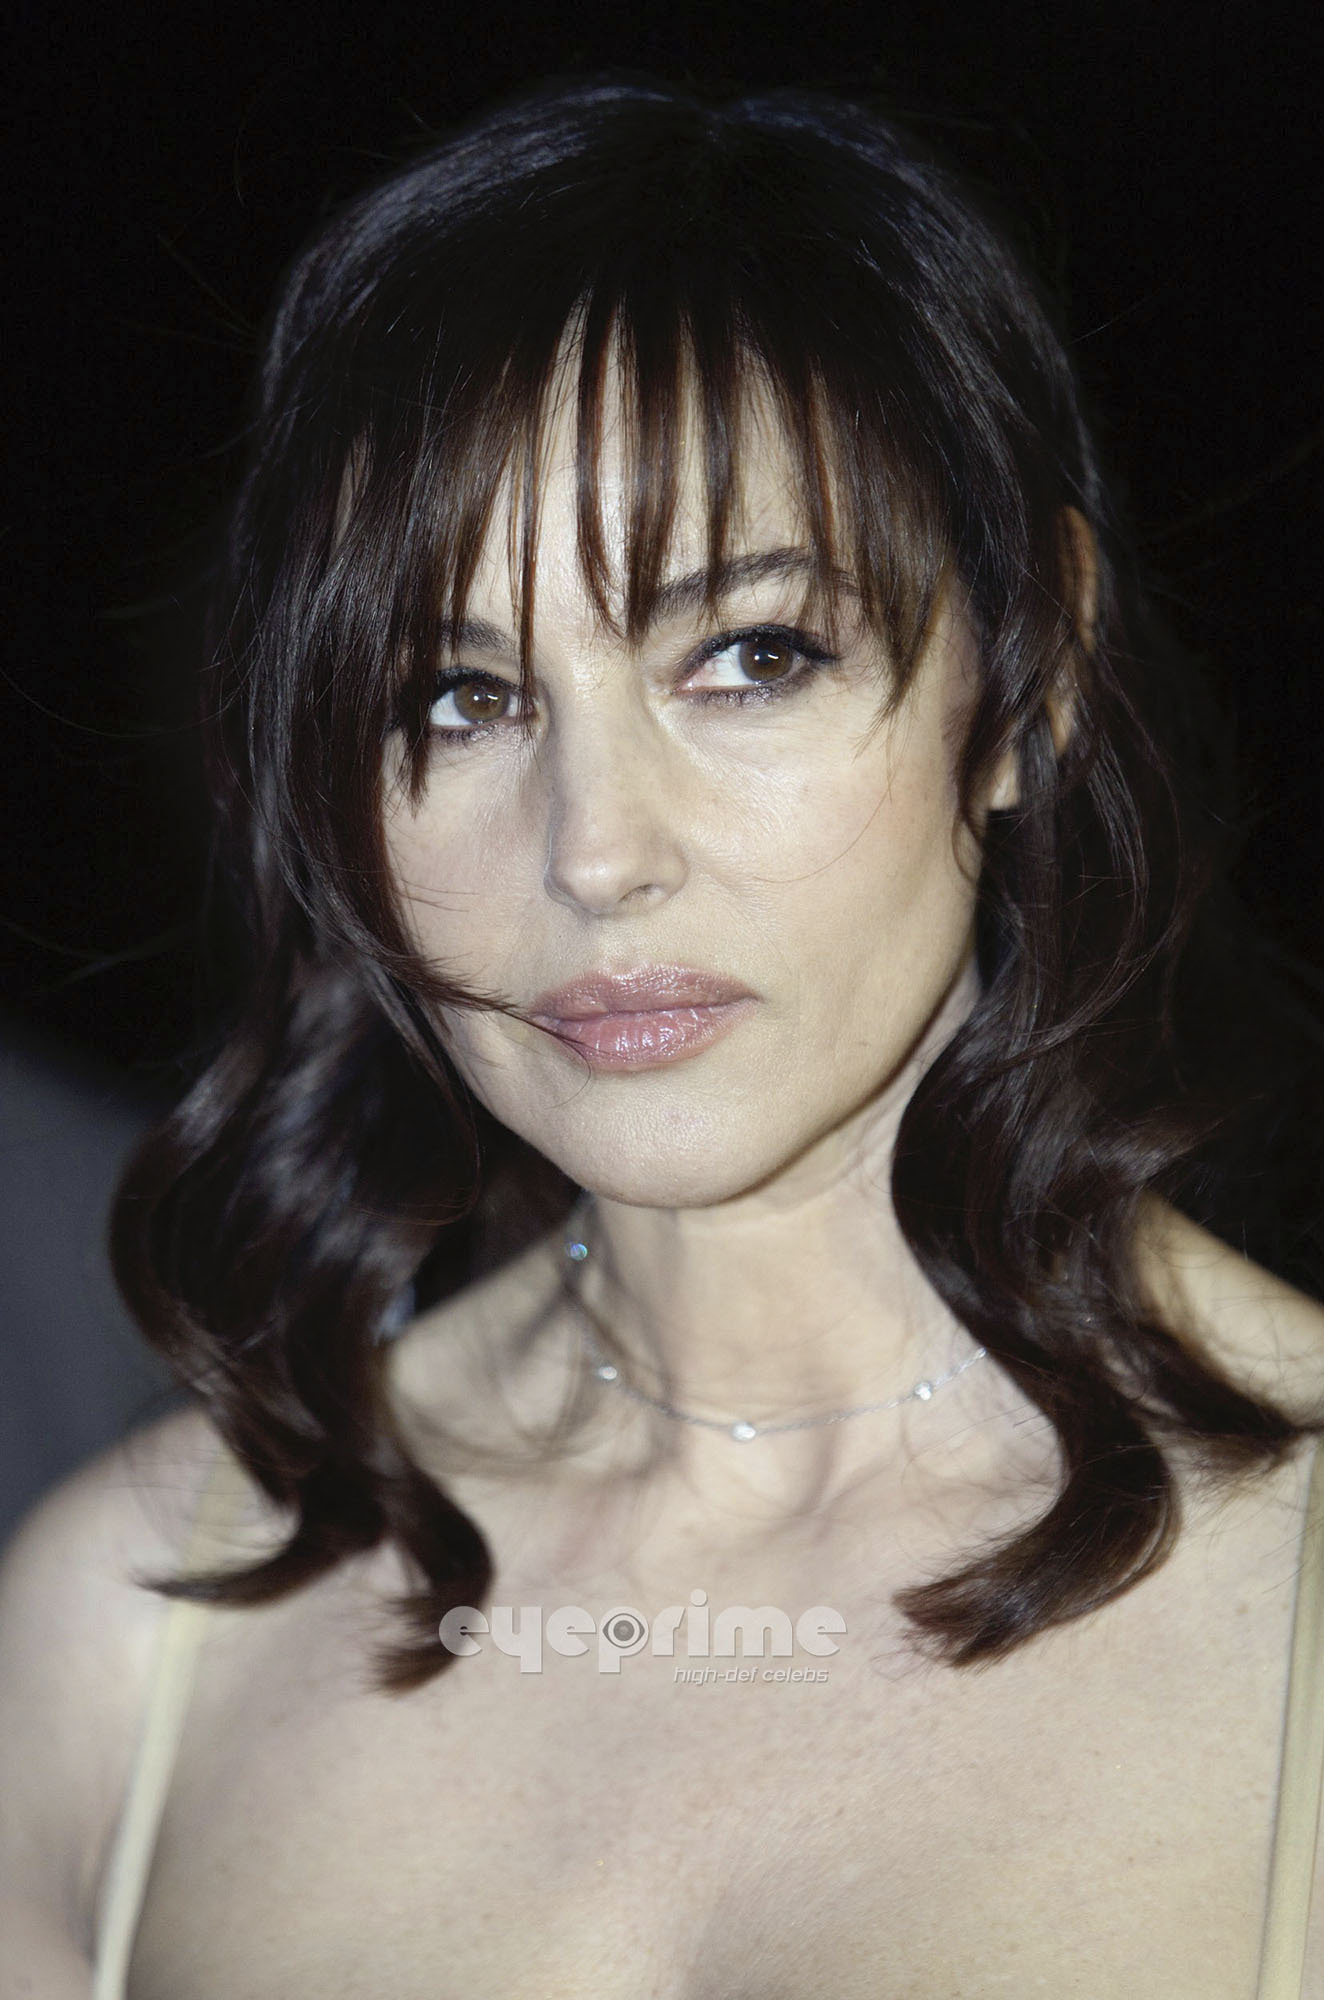 Monica Bellucci receives the Taormina Art Award in Taormina, Italy, Jun 11